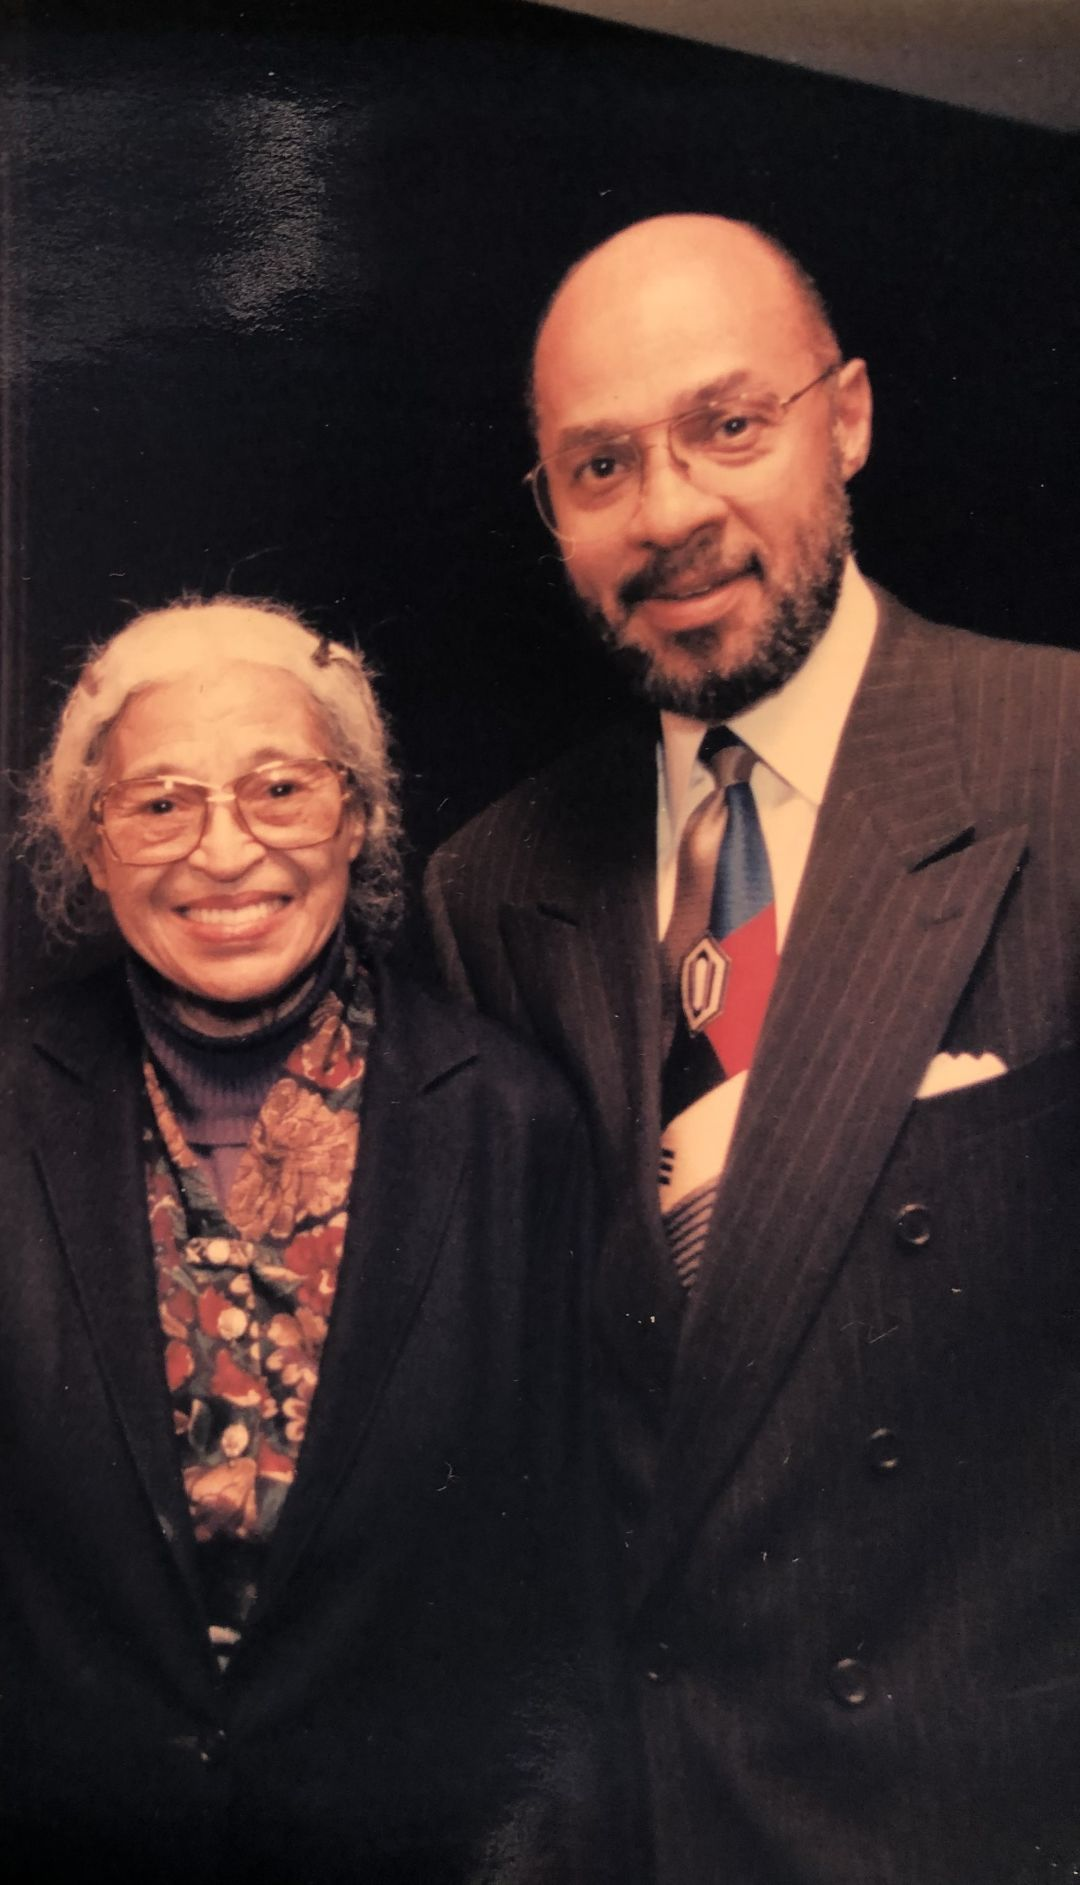 Dennis Archer with civil rights icon Rosa Parks. Archer was appointed Parks' legal guardian in 2004.